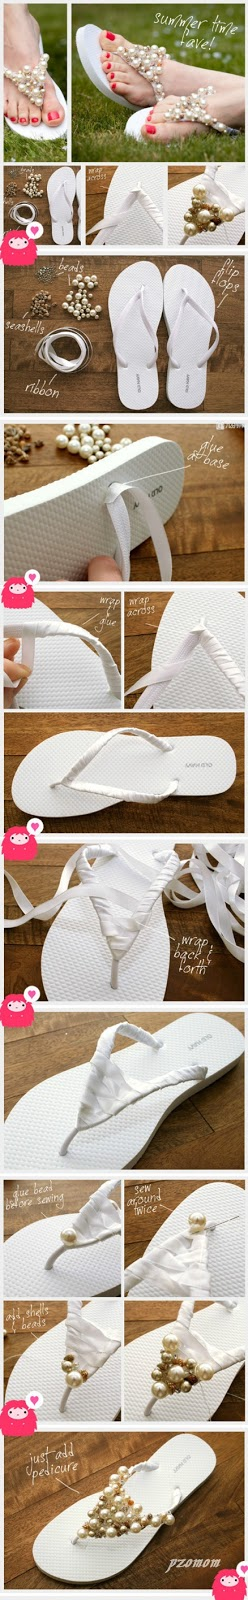 diy chanclas